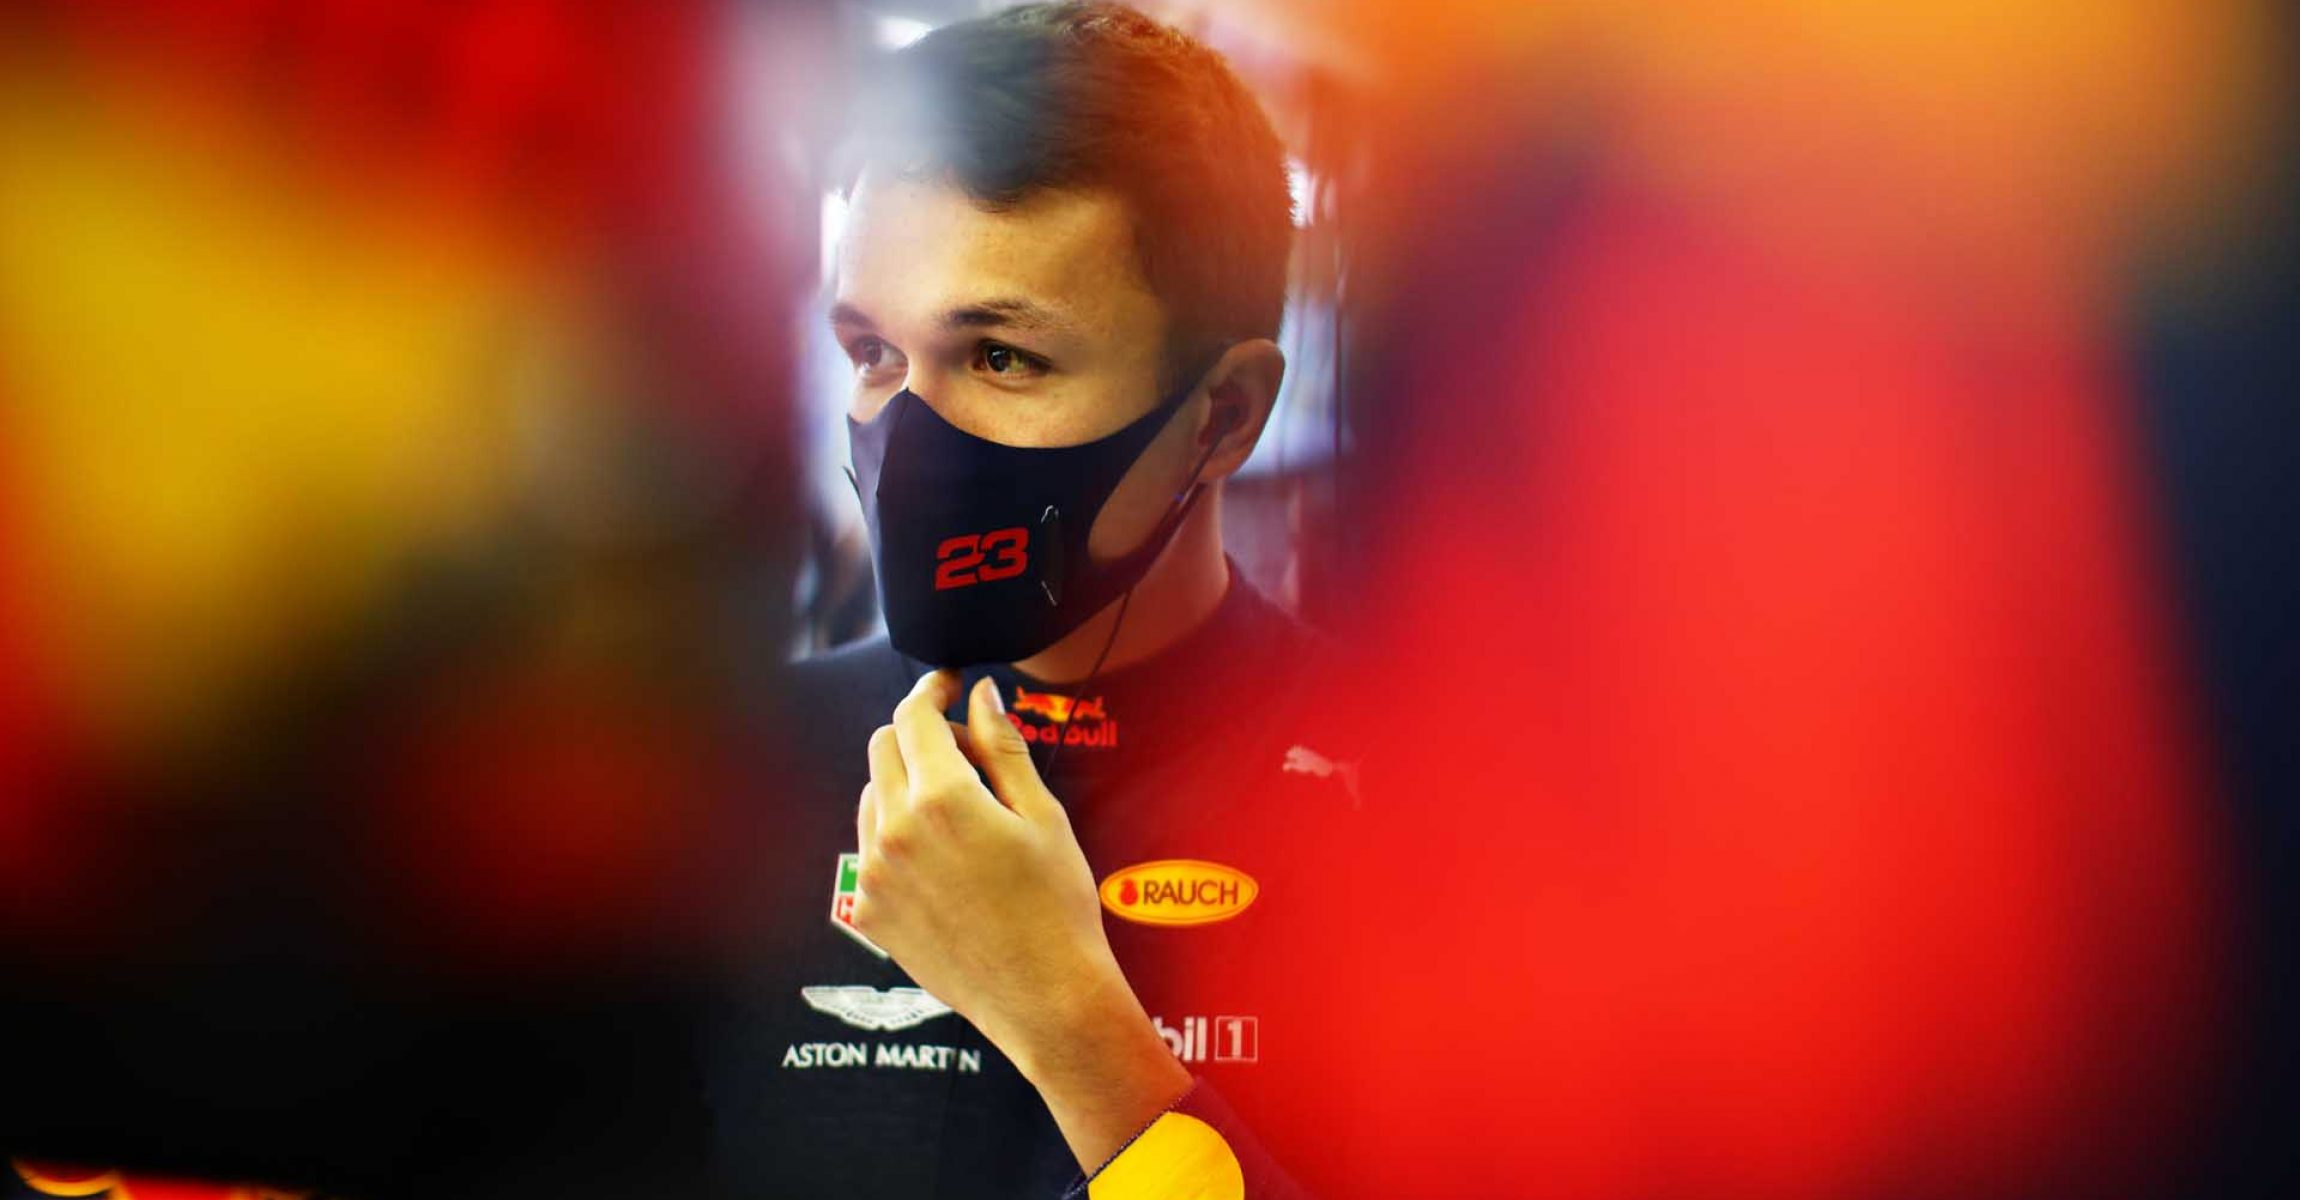 BAHRAIN, BAHRAIN - DECEMBER 04: Alexander Albon of Thailand and Red Bull Racing prepares to drive in the garage during practice ahead of the F1 Grand Prix of Sakhir at Bahrain International Circuit on December 04, 2020 in Bahrain, Bahrain. (Photo by Mark Thompson/Getty Images)